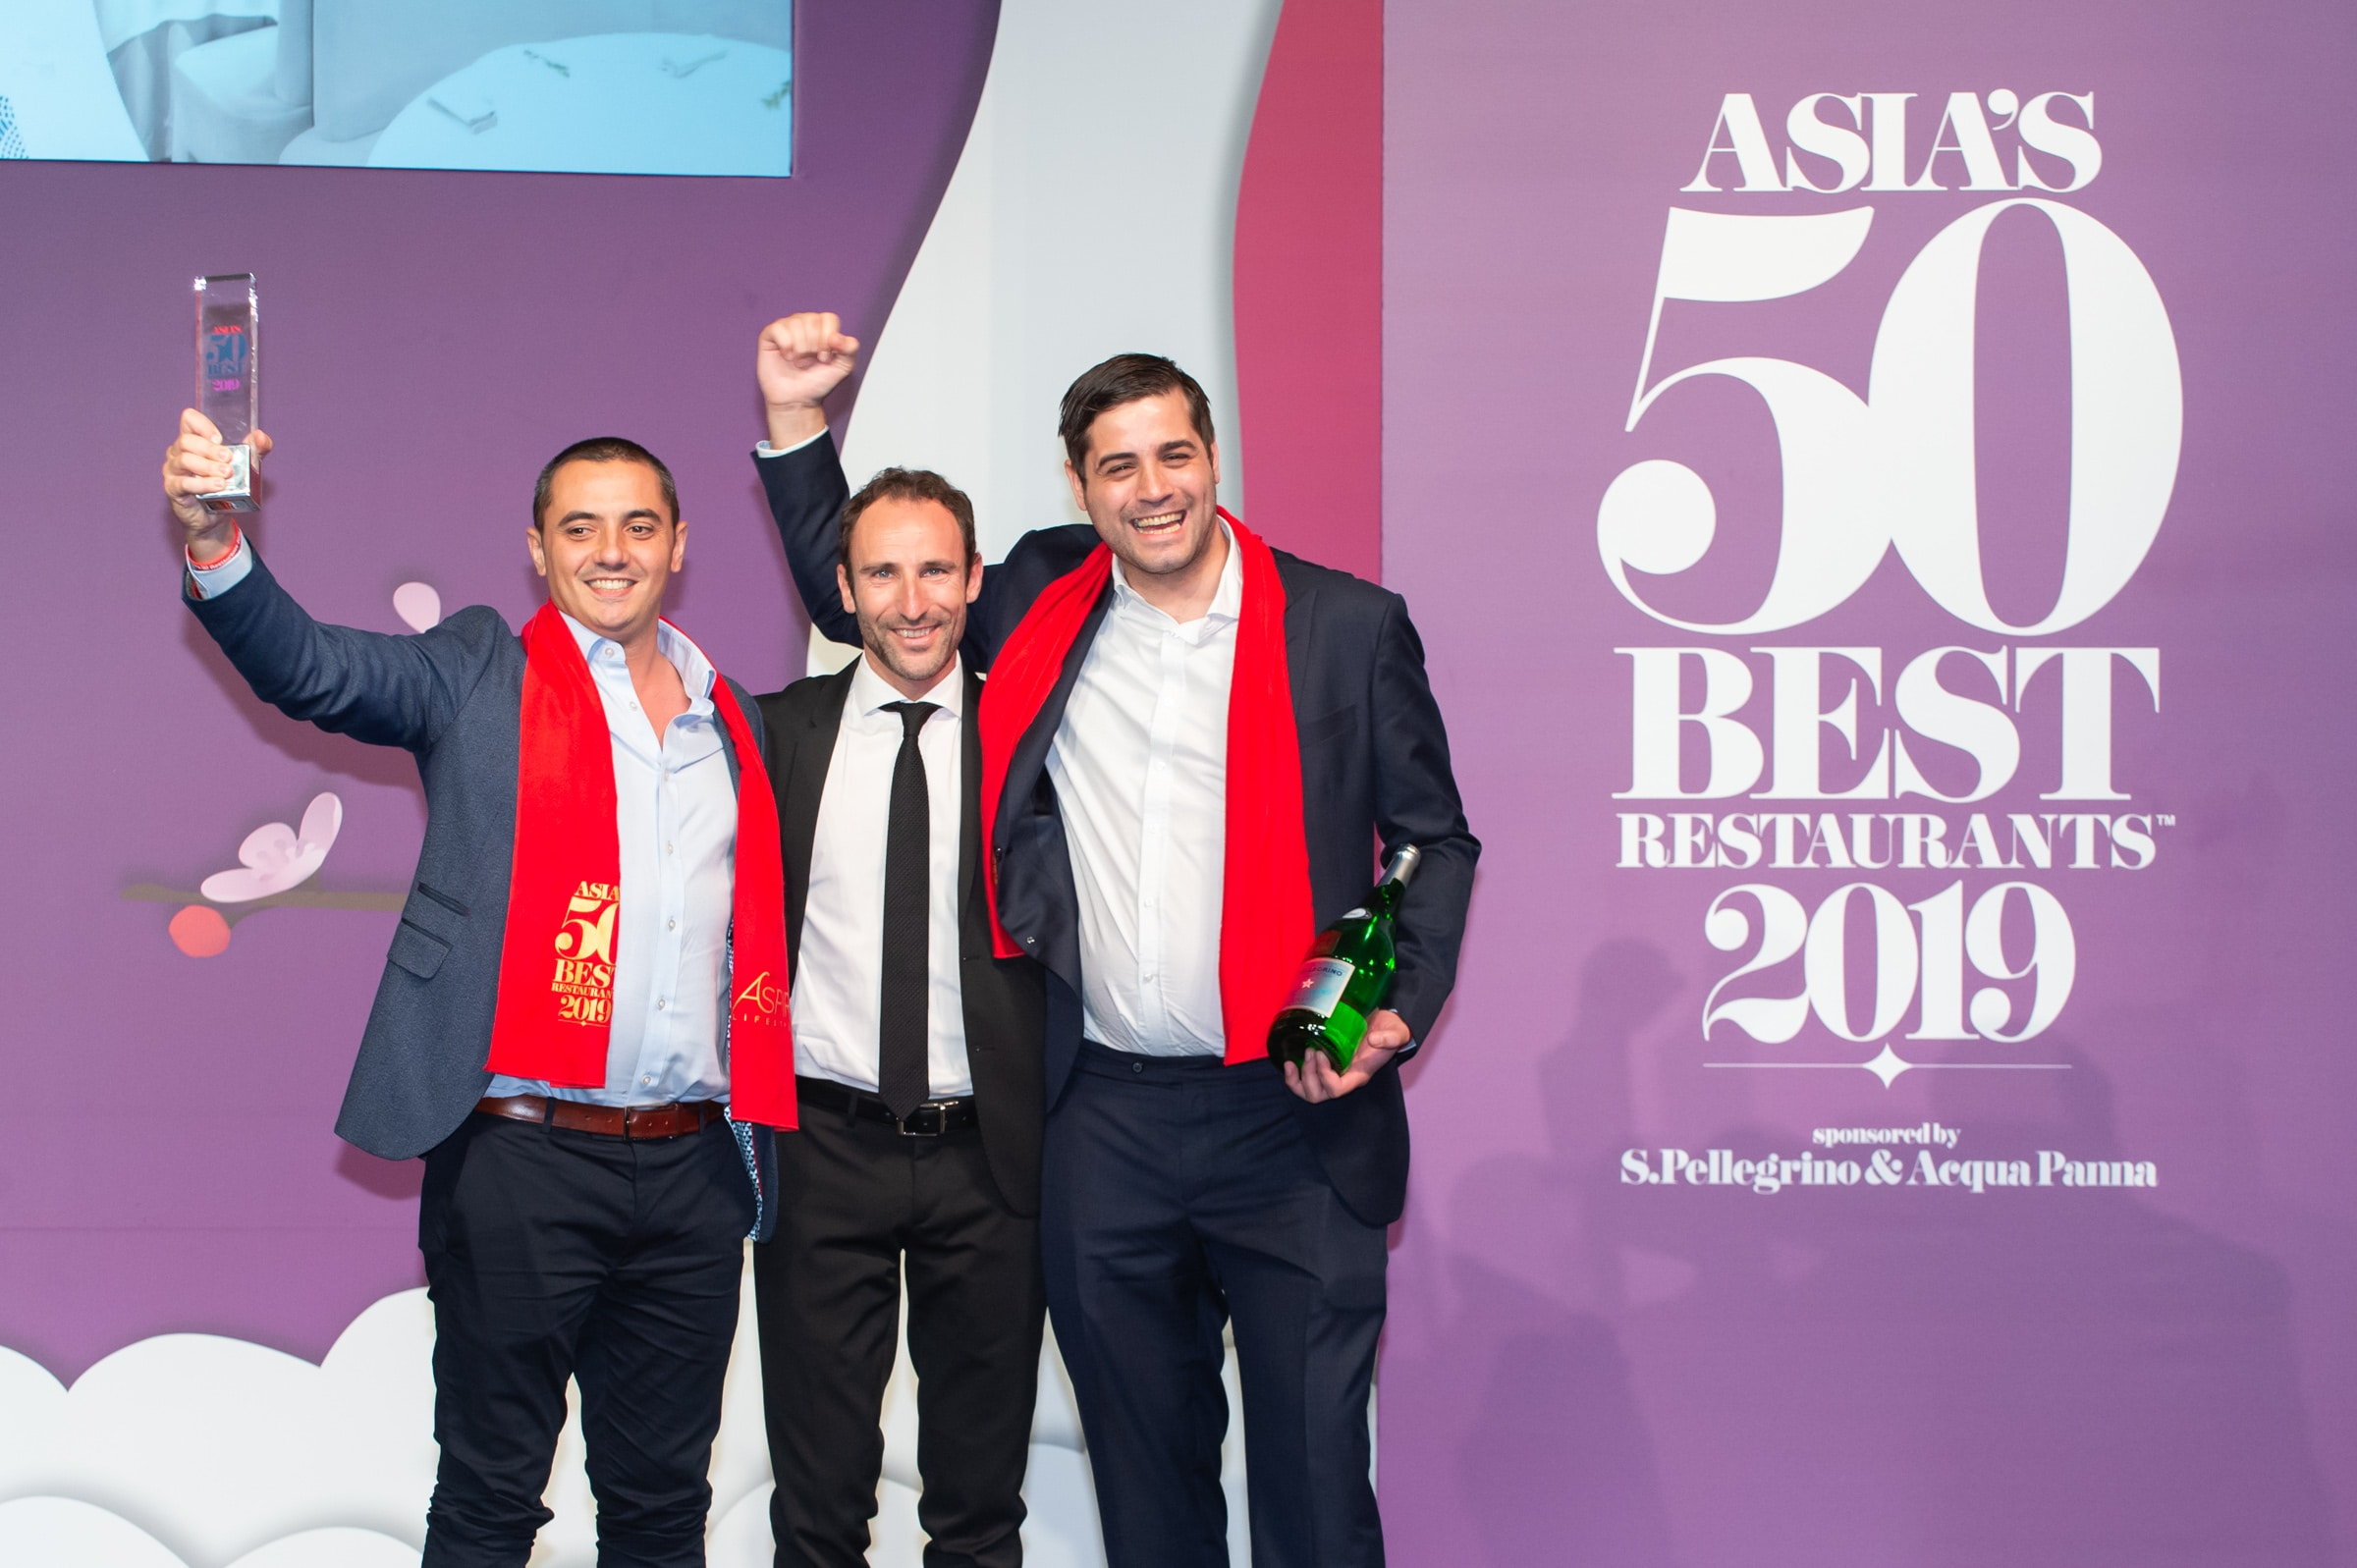 Asia's 50 Best Restaurants 2019: Singapore's Odette Takes the Top Spot